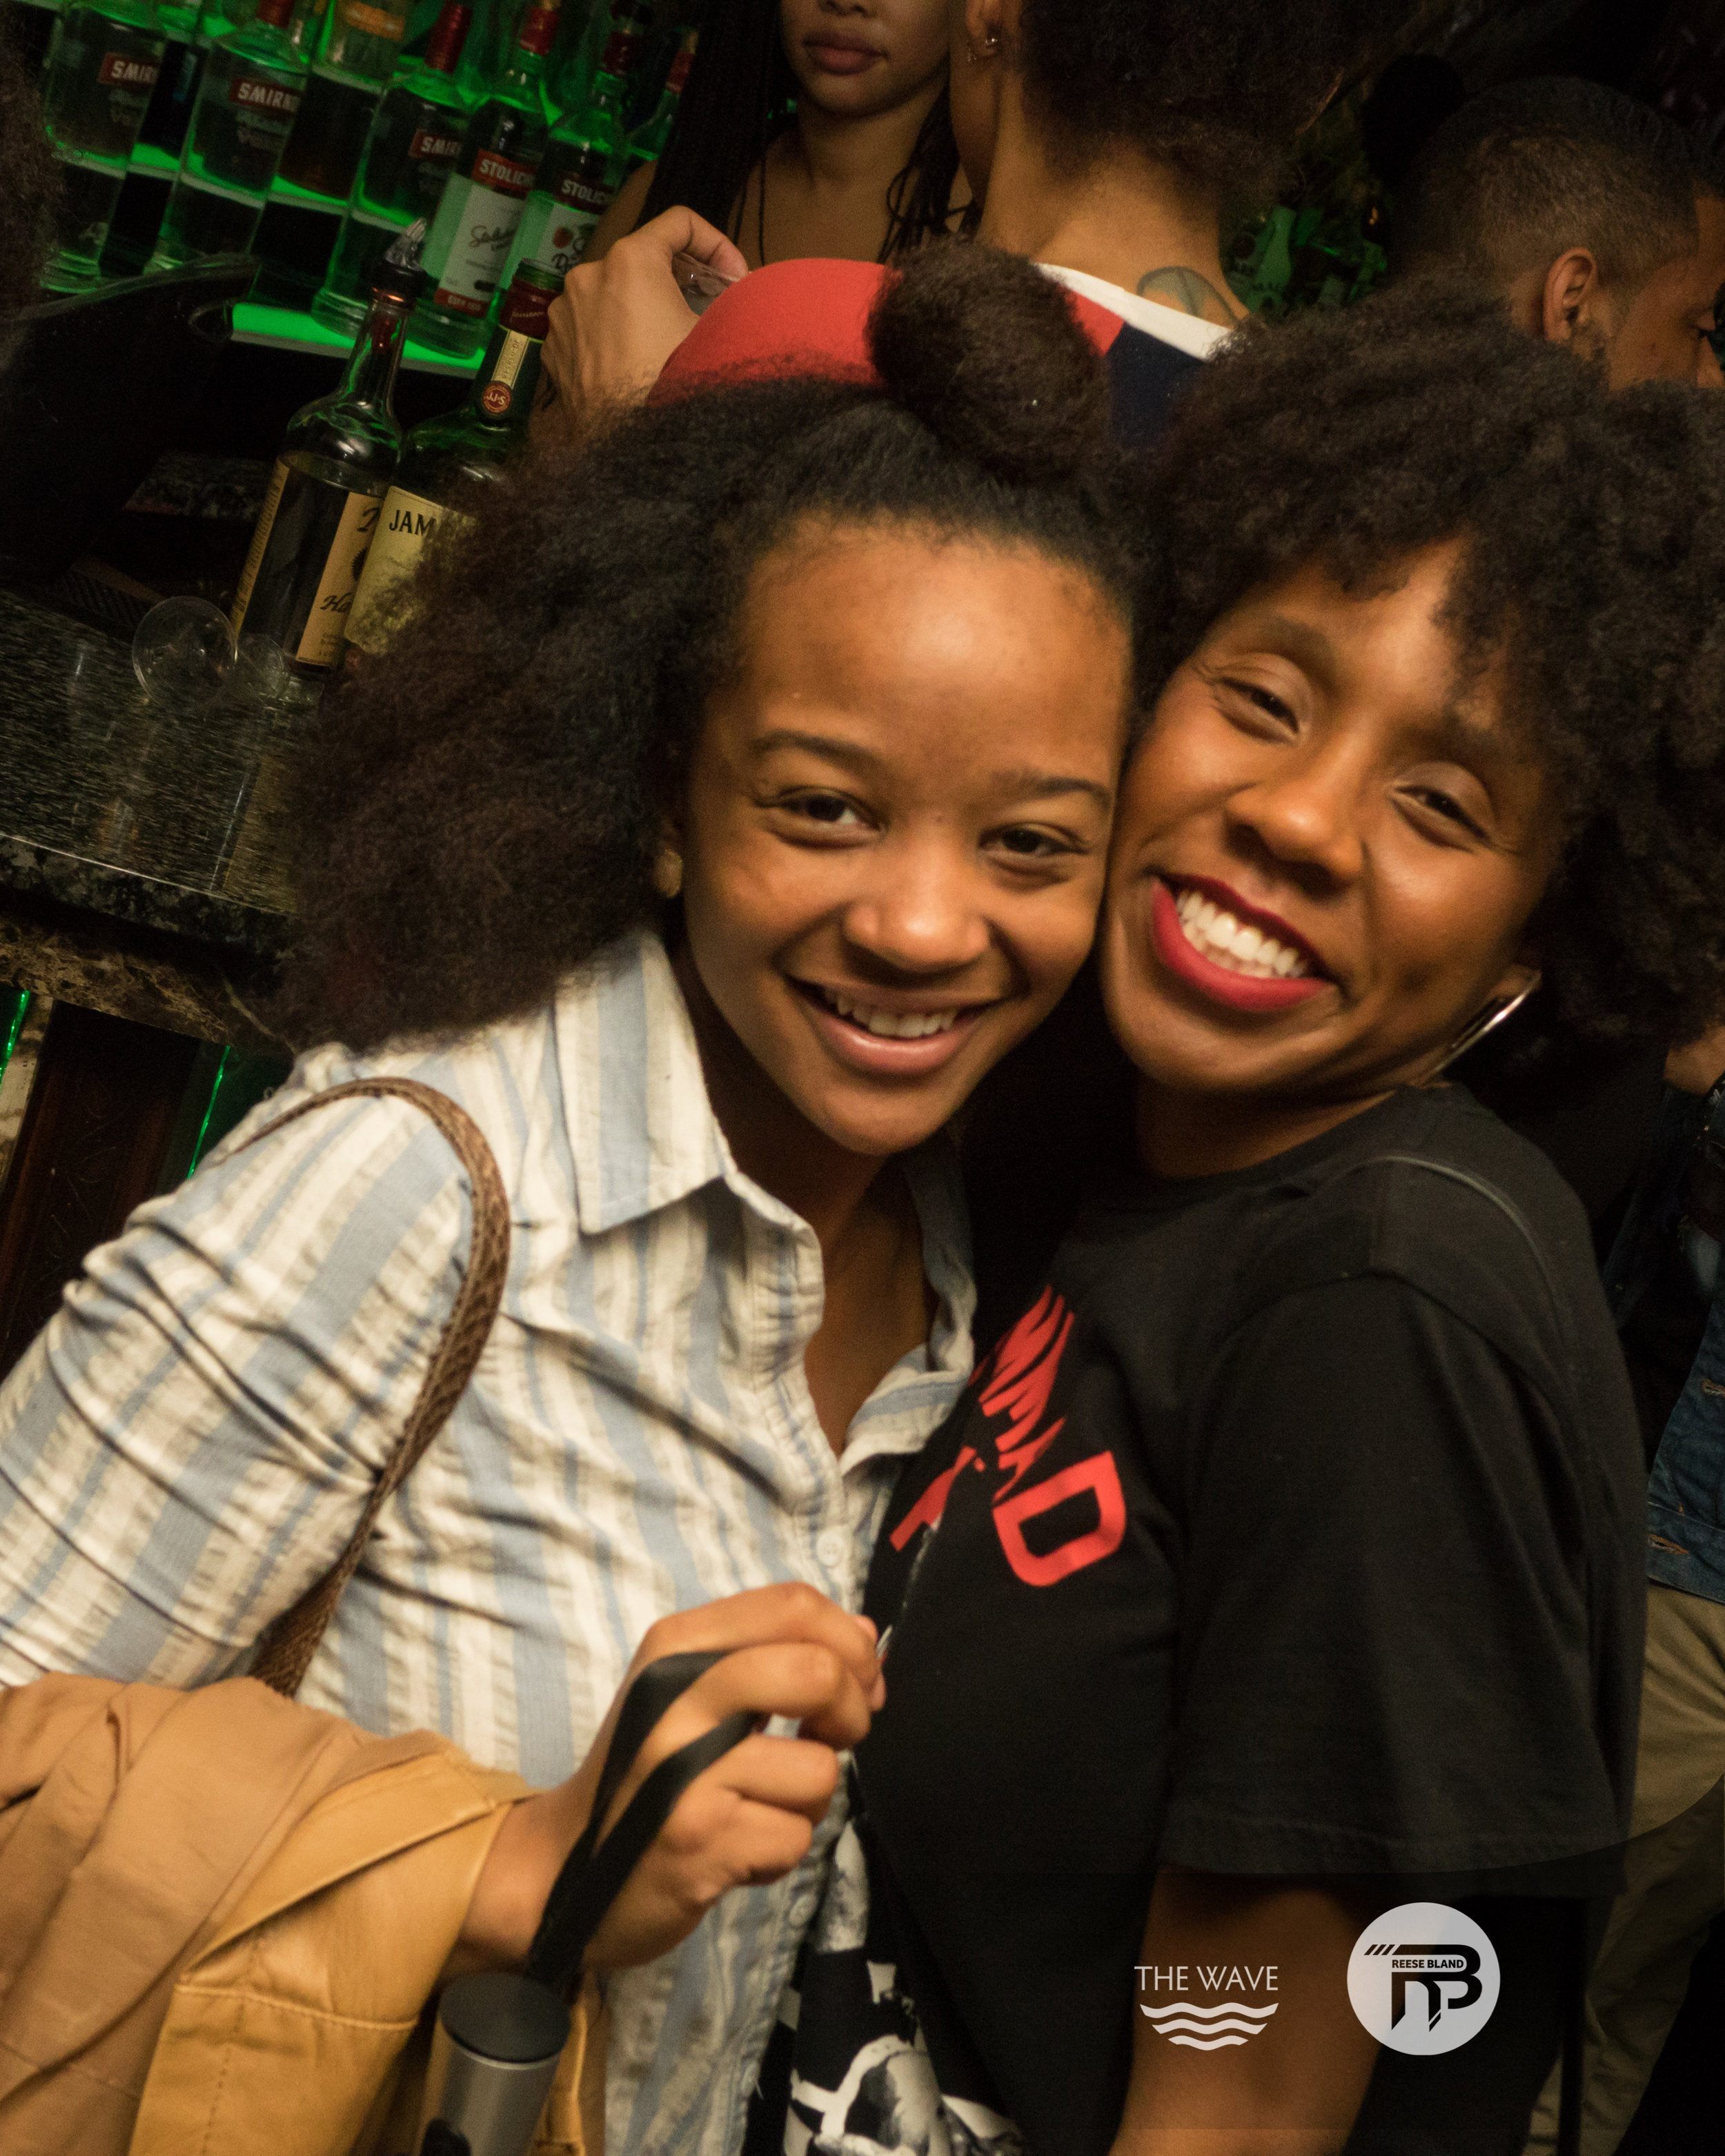 WaveDC-BlackBarCrawl-2-2018-07043.jpg